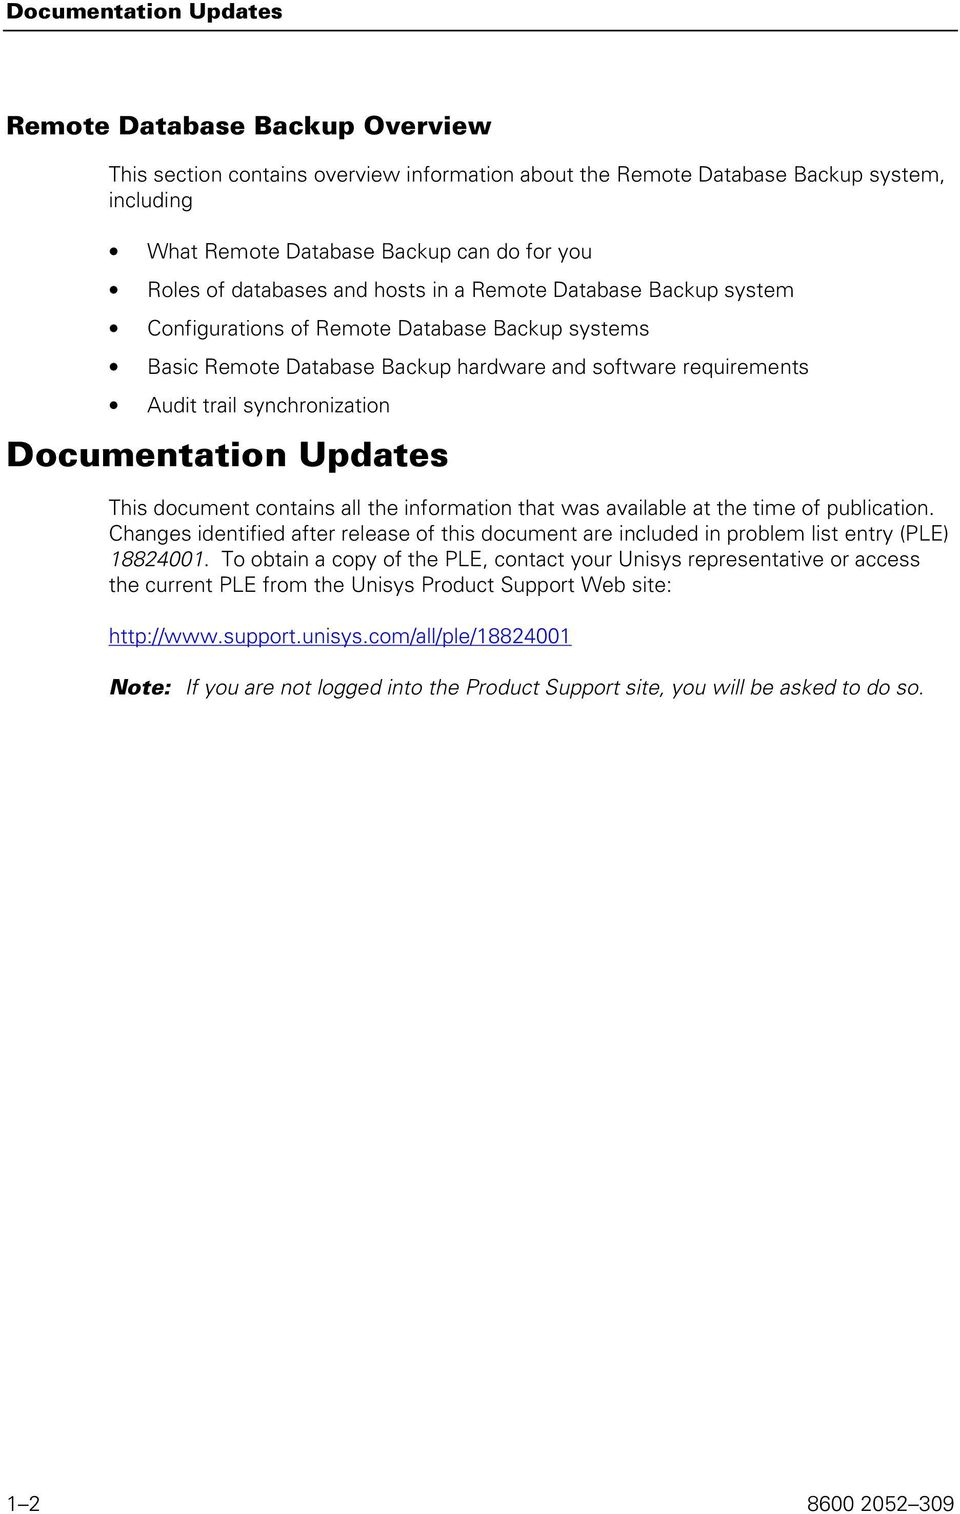 Documentation Updates This document contains all the information that was available at the time of publication.